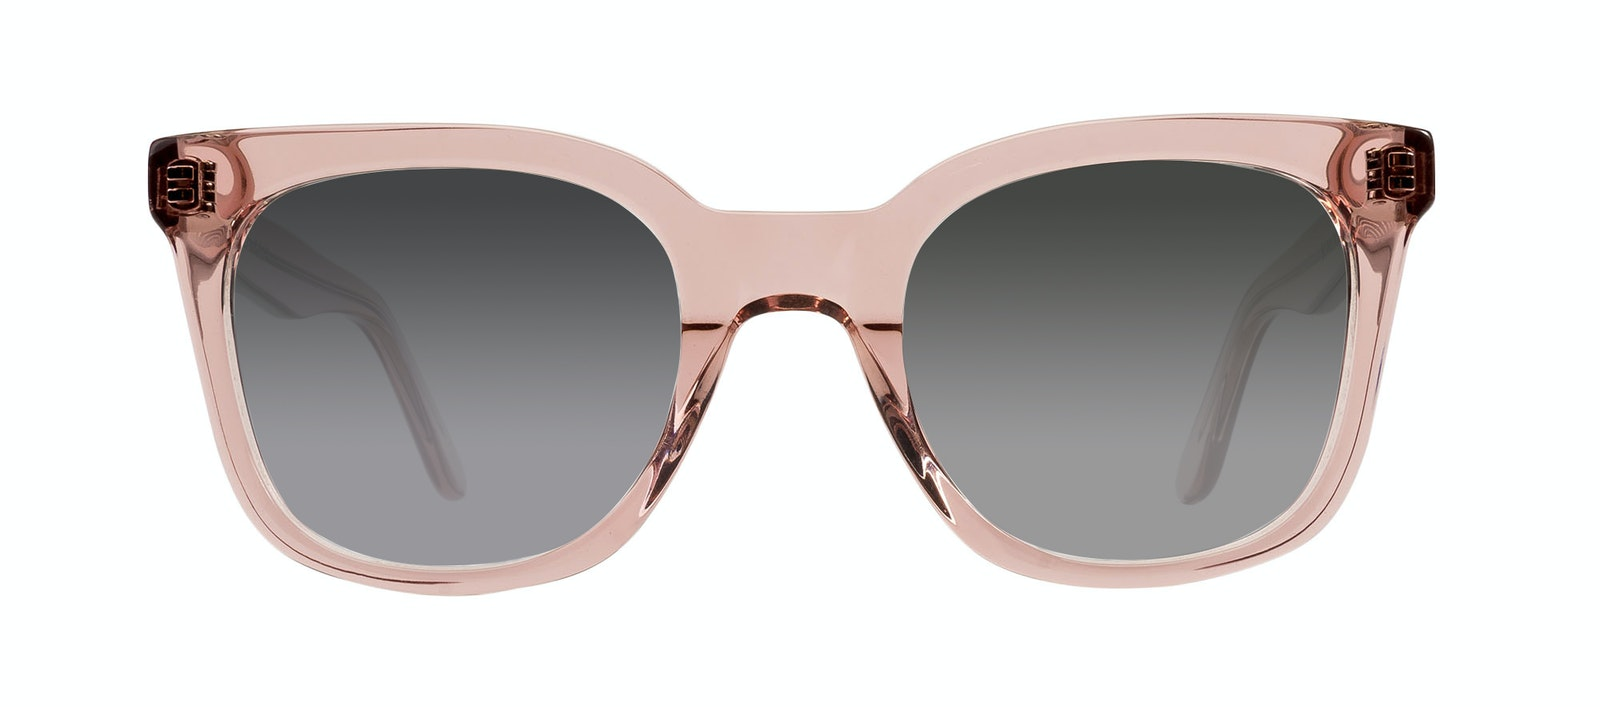 Affordable Fashion Glasses Rectangle Square Sunglasses Women Jack & Norma Rose Front